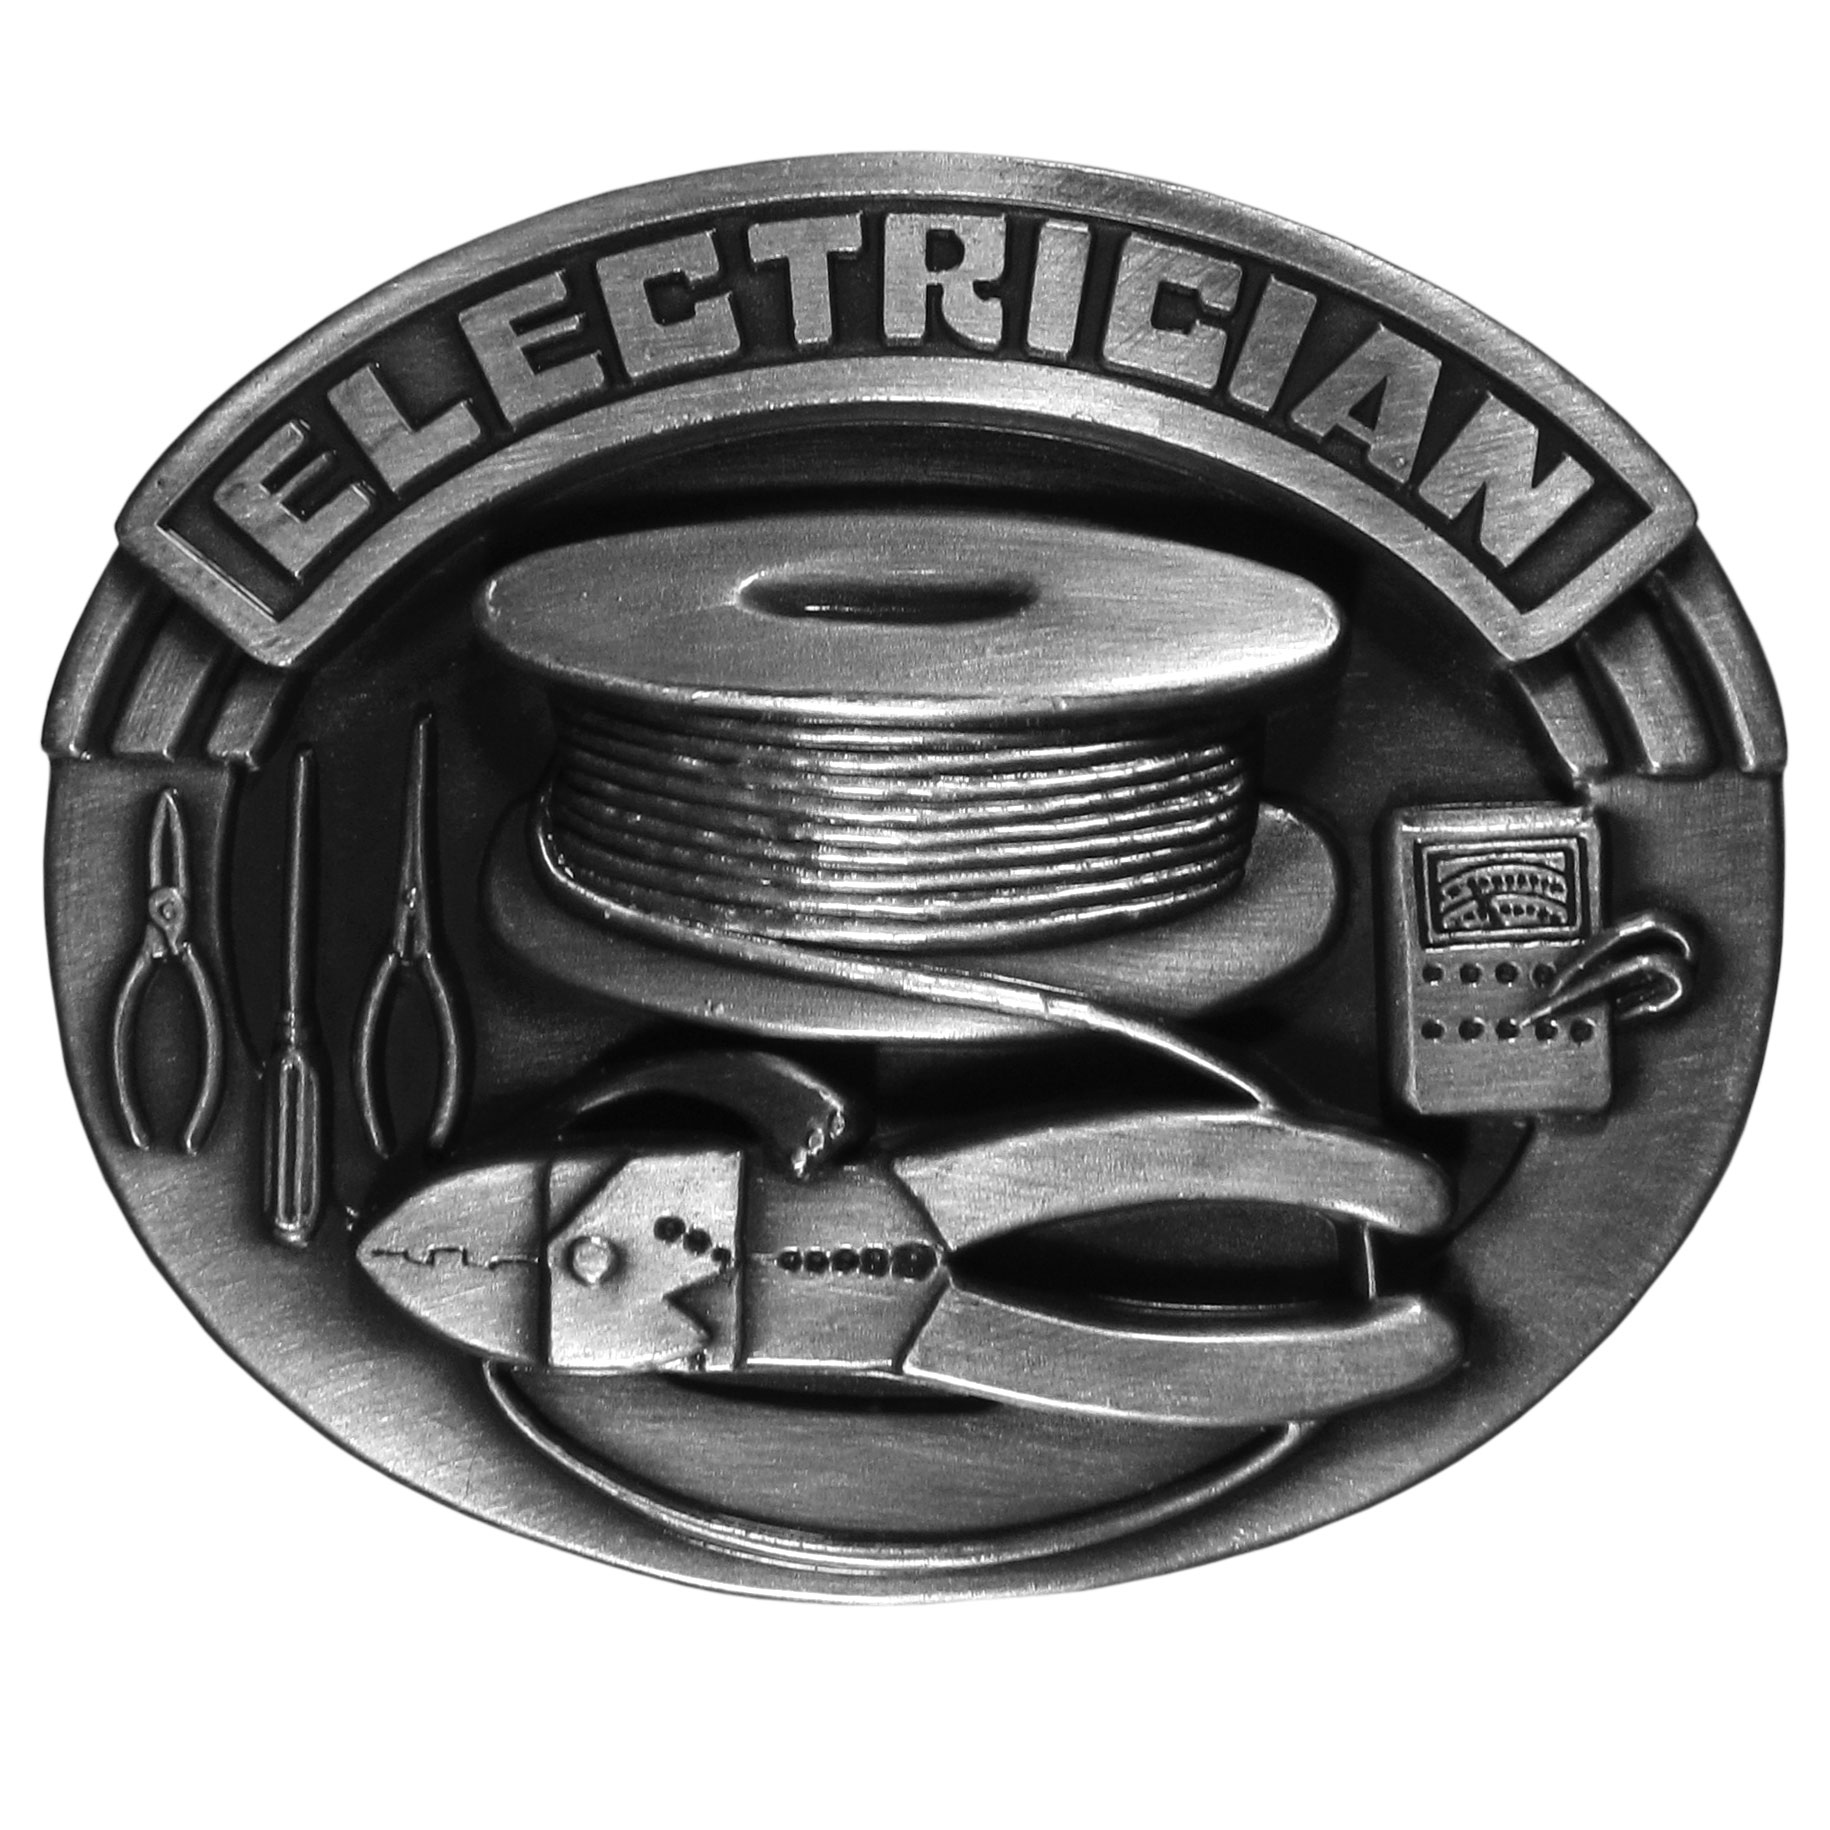 "Electrician Antiqued Belt Buckle - ""This belt buckle celebrates the electrician!  """"Electrician"""" is written in bold across the top with tools of the trade below.  On the back are the words, """"Proud to be an Electrician"""" on a spool of wire.  Our fully cast metal belt buckles have exceptional detail and fine craftmanship with an antiqued finish. Standard bale fits belts up to 2"""" in width."""